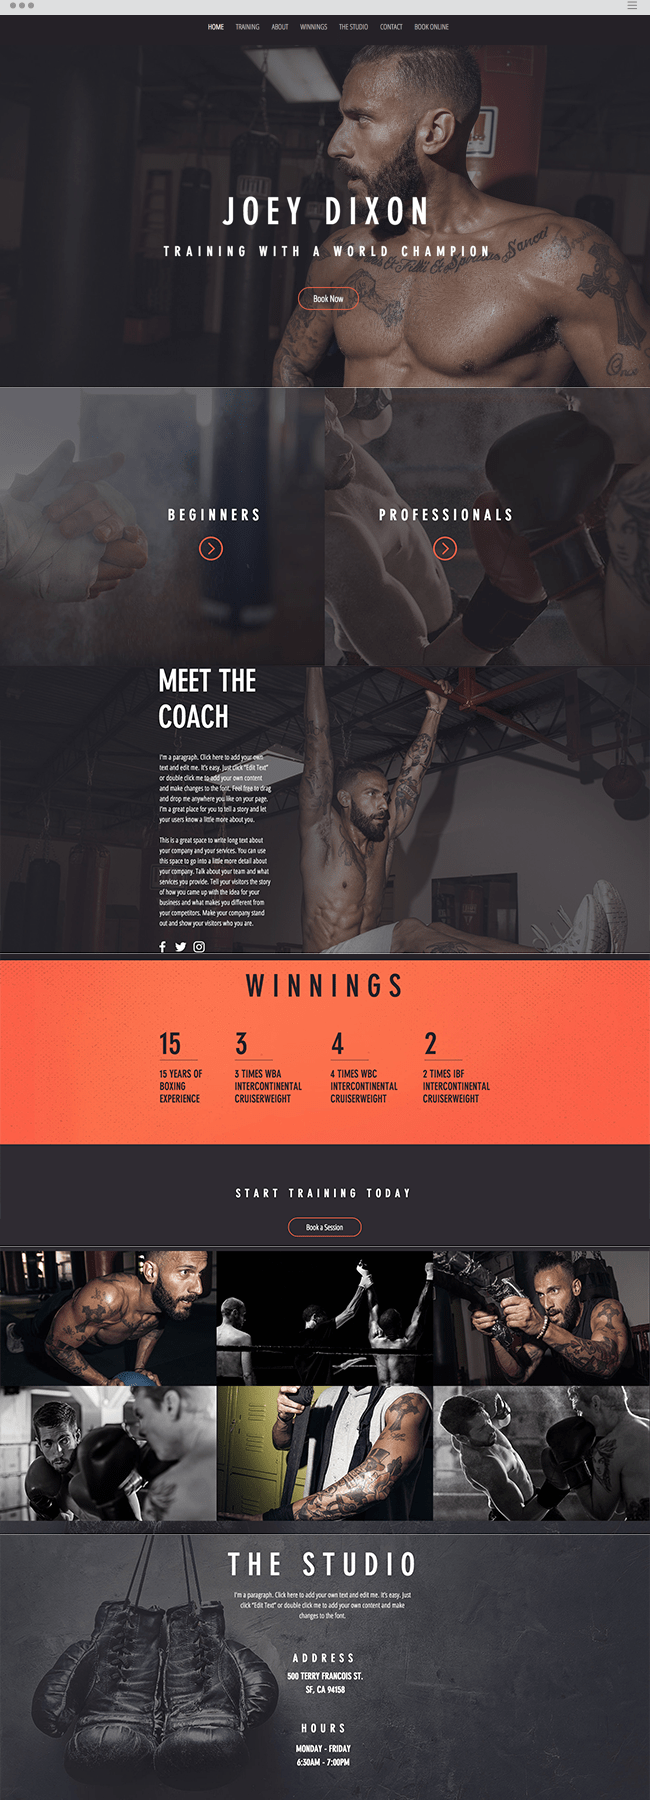 12 Stunning Website Templates You Can\'t Miss in 2016